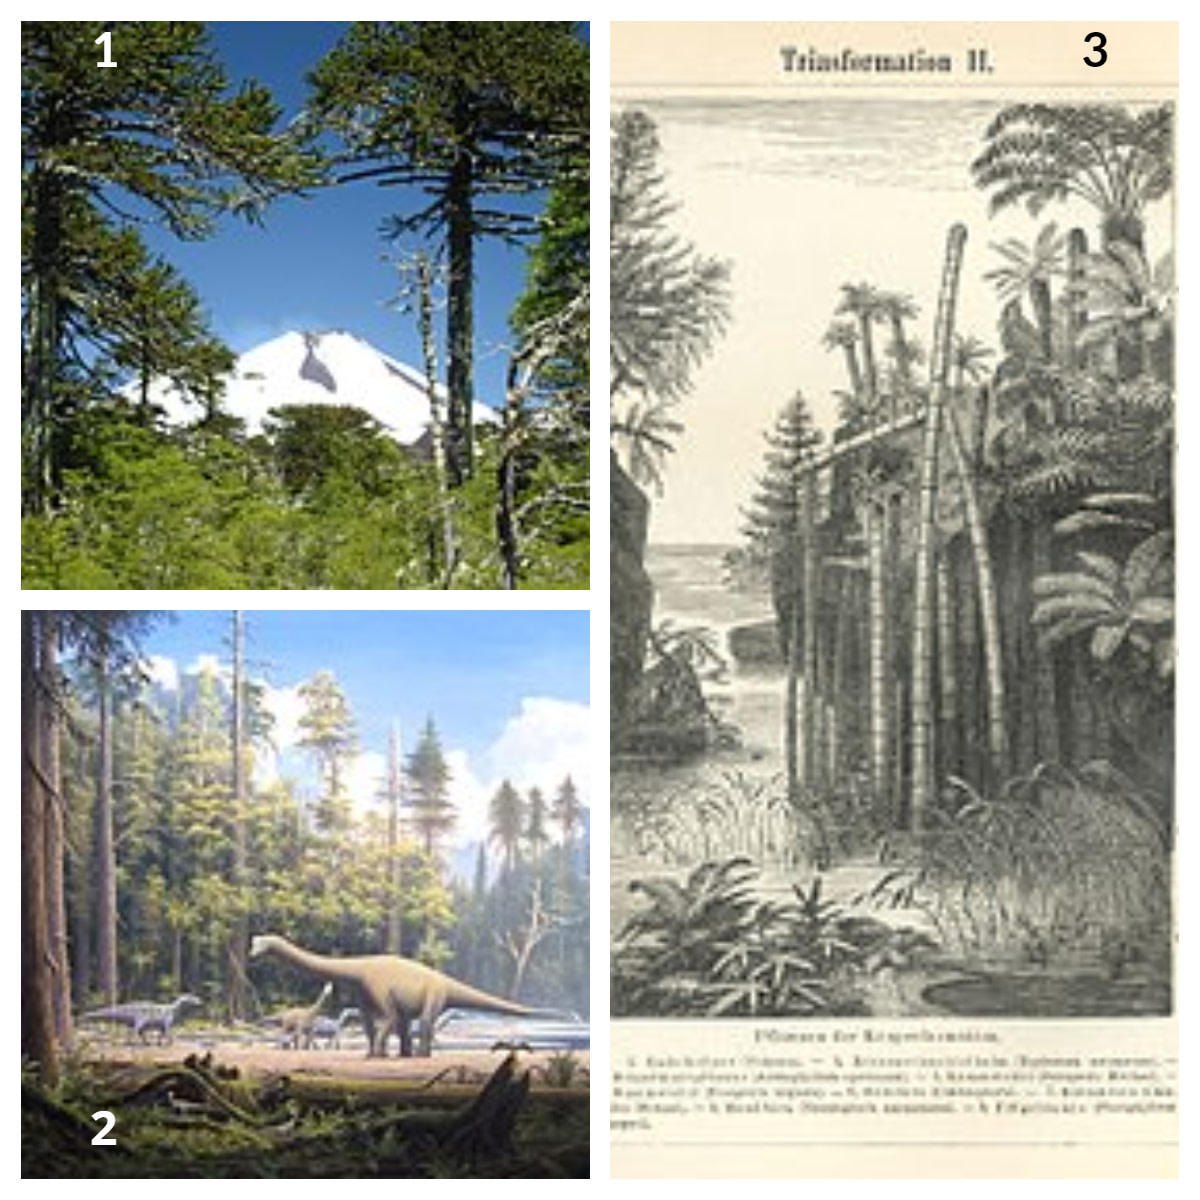 1.  Jurassic Period 2.  Cretaceous Period - Typical Conifers 3.  Triassic Period - Typical Flora